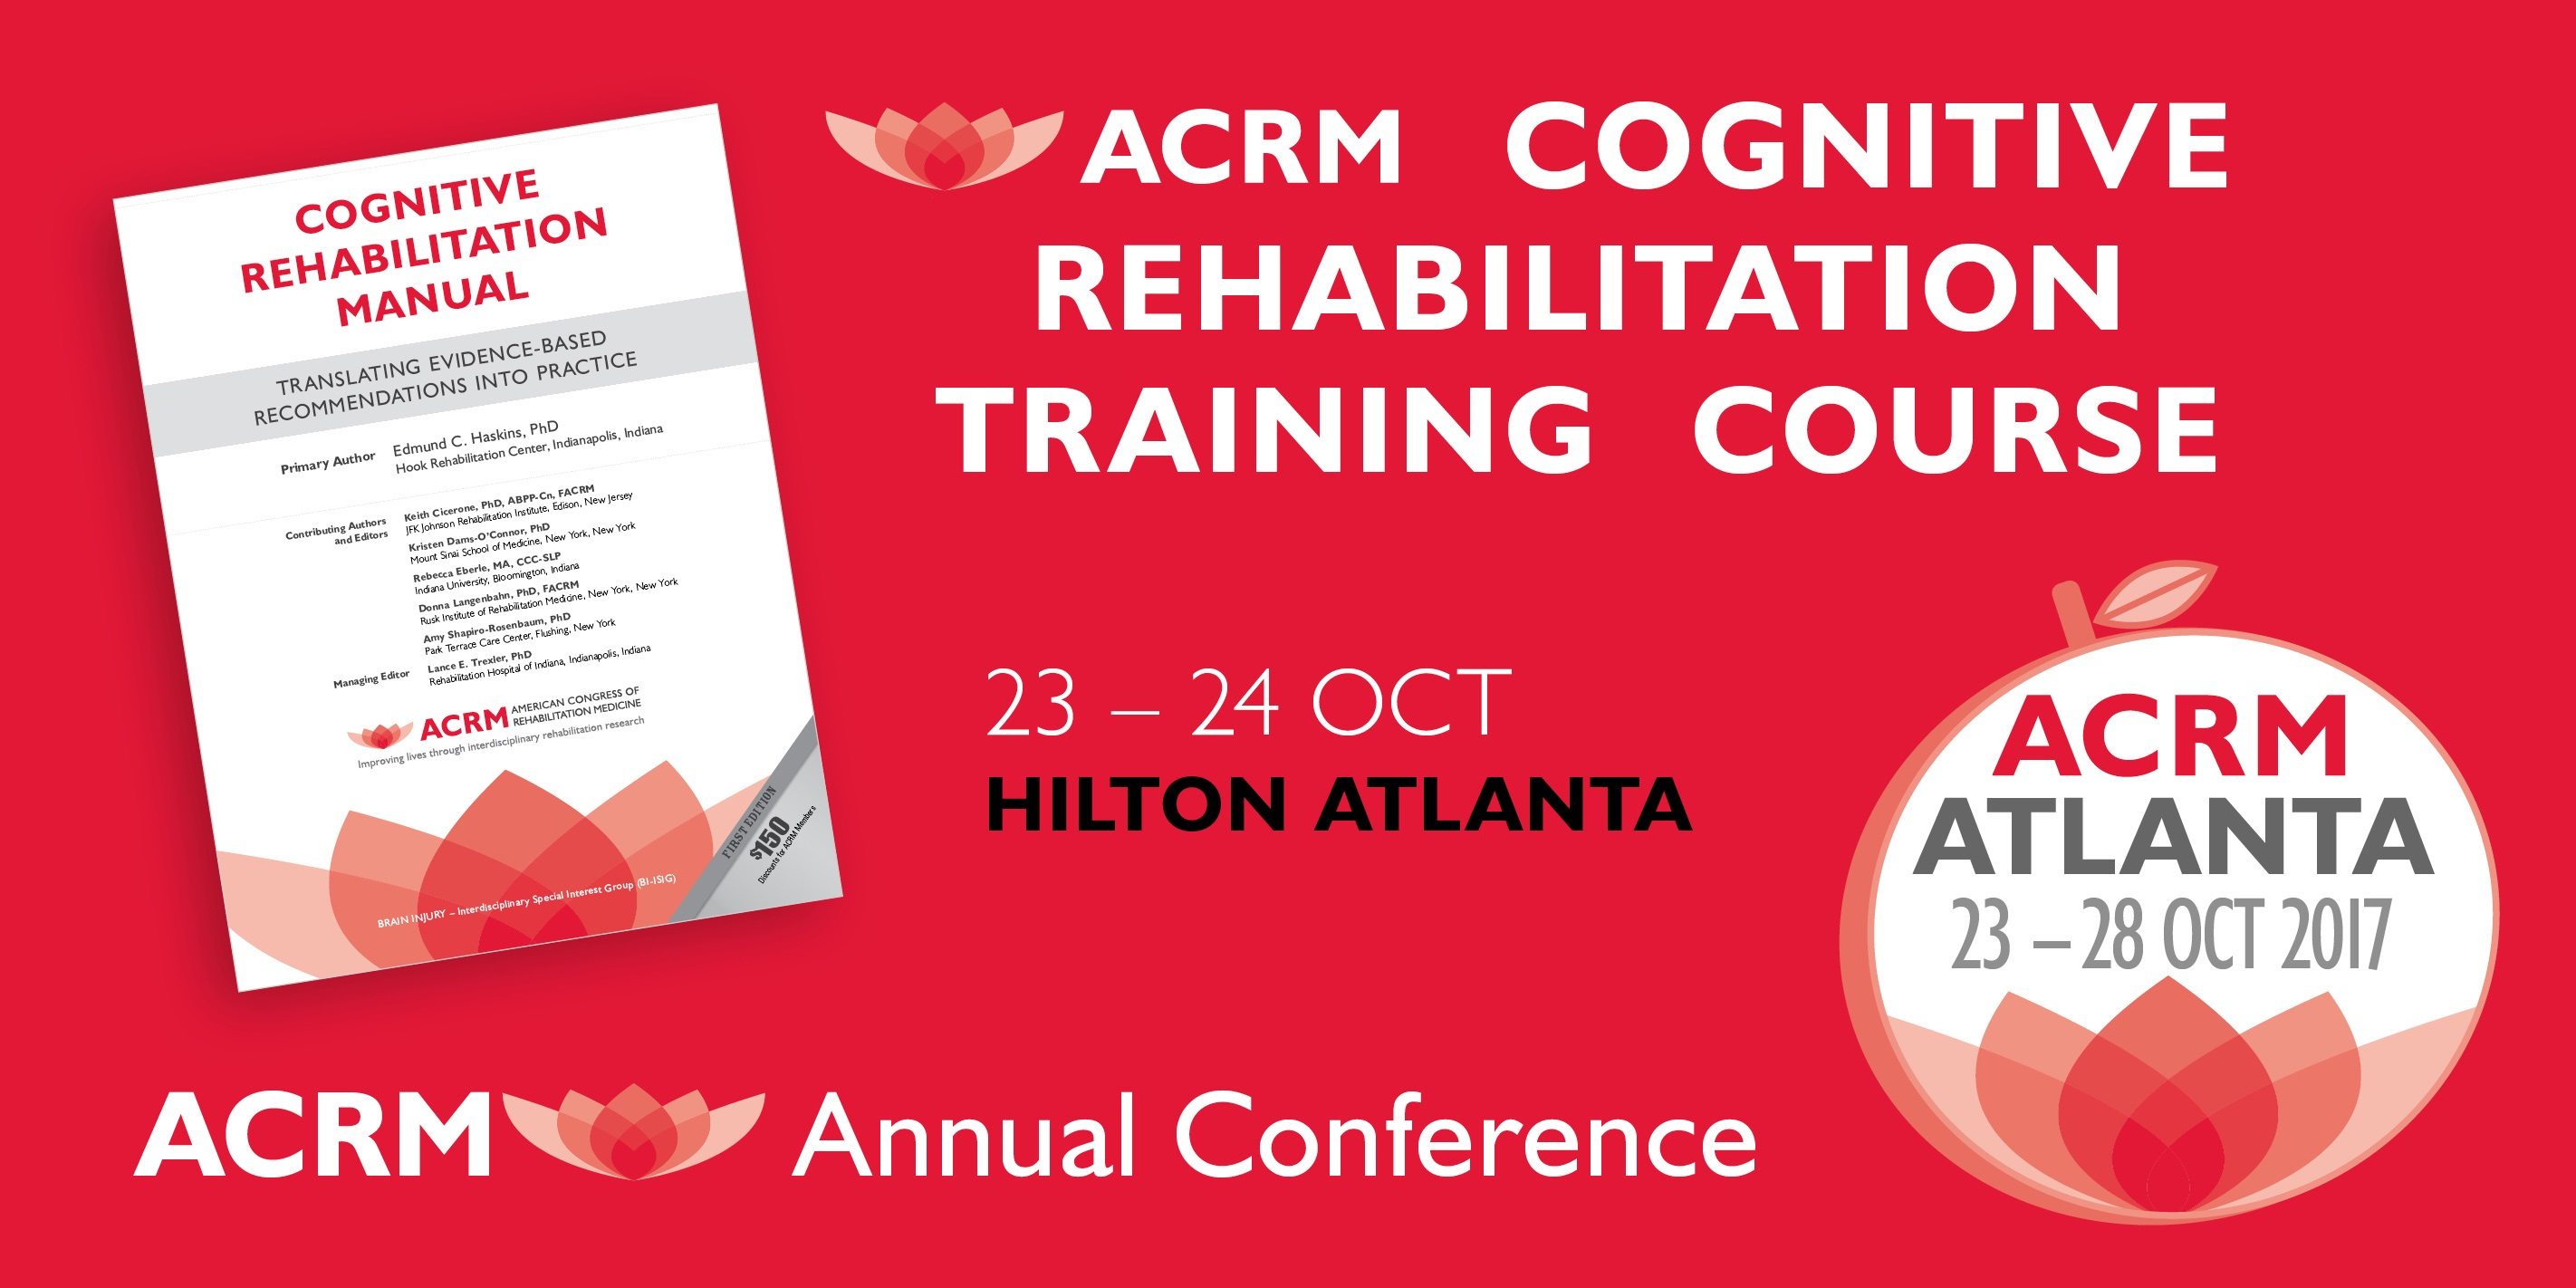 CLICK to Learn More about Cognitive Rehabilitation Training coming to Atlanta, GA